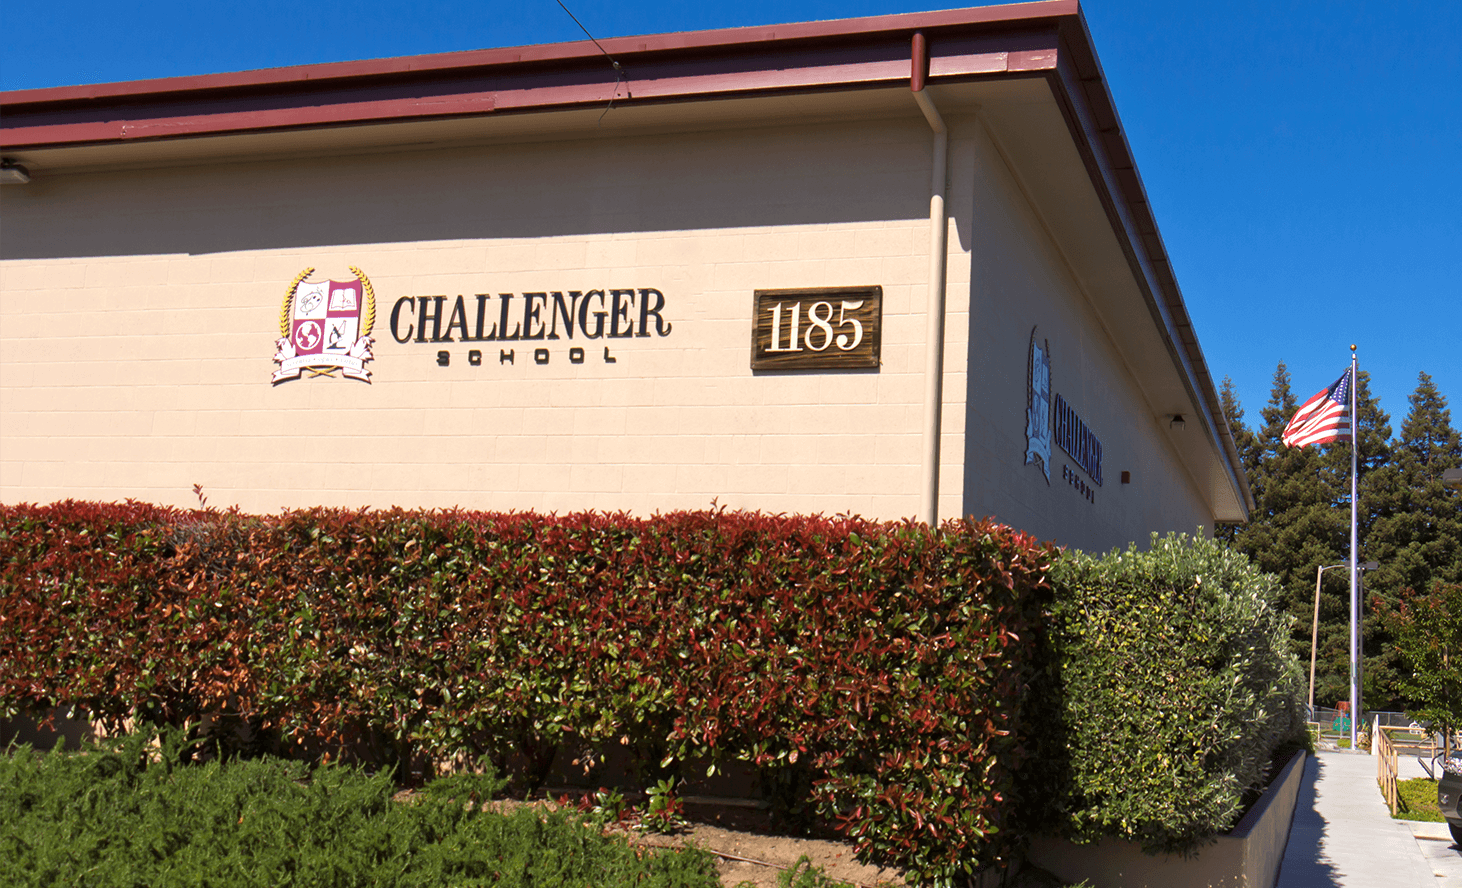 Building Front | Challenger School - Sunnyvale | Private School In Sunnyvale, California